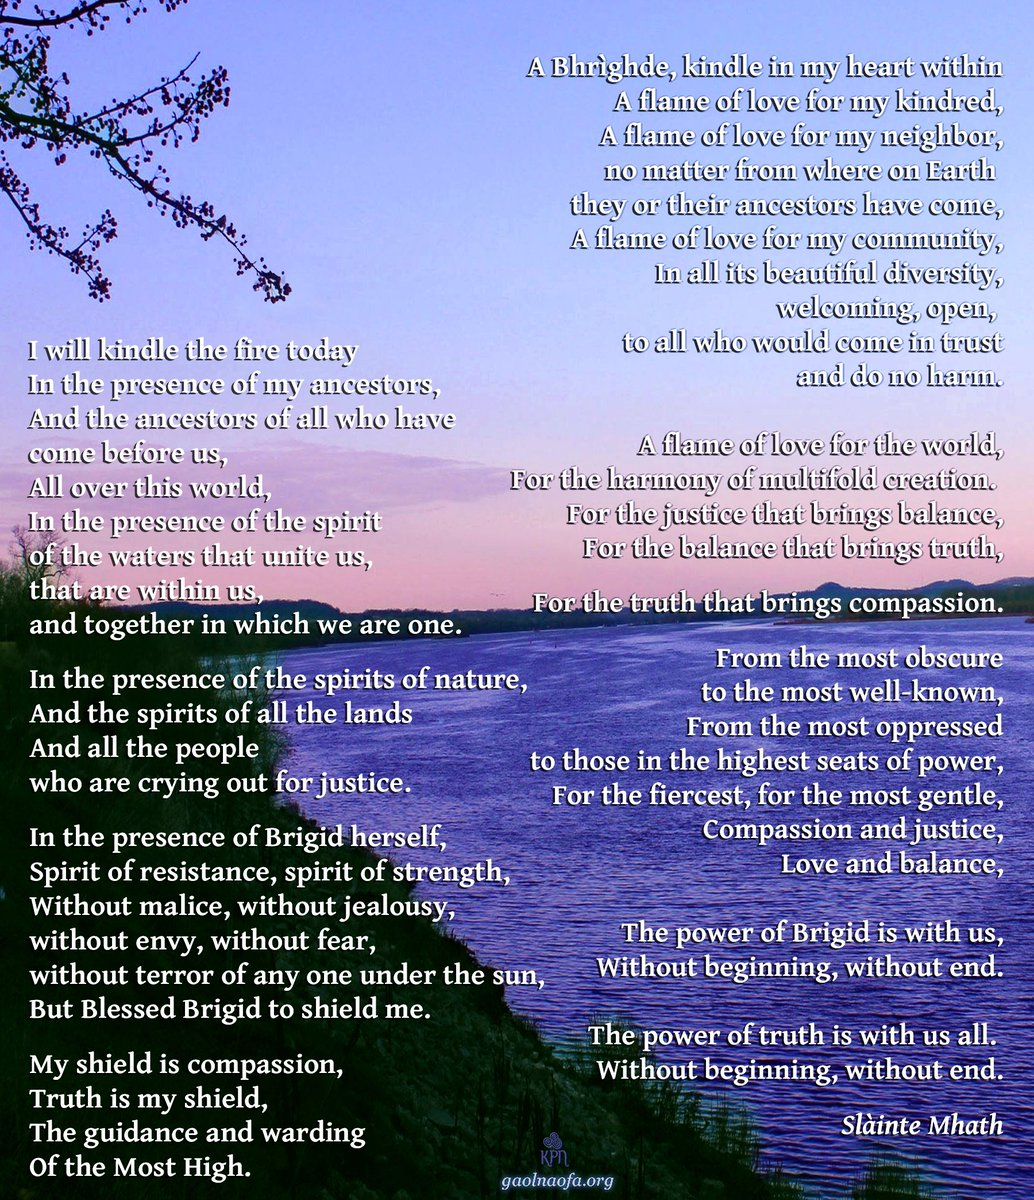 A Prayer to Kindle Peace